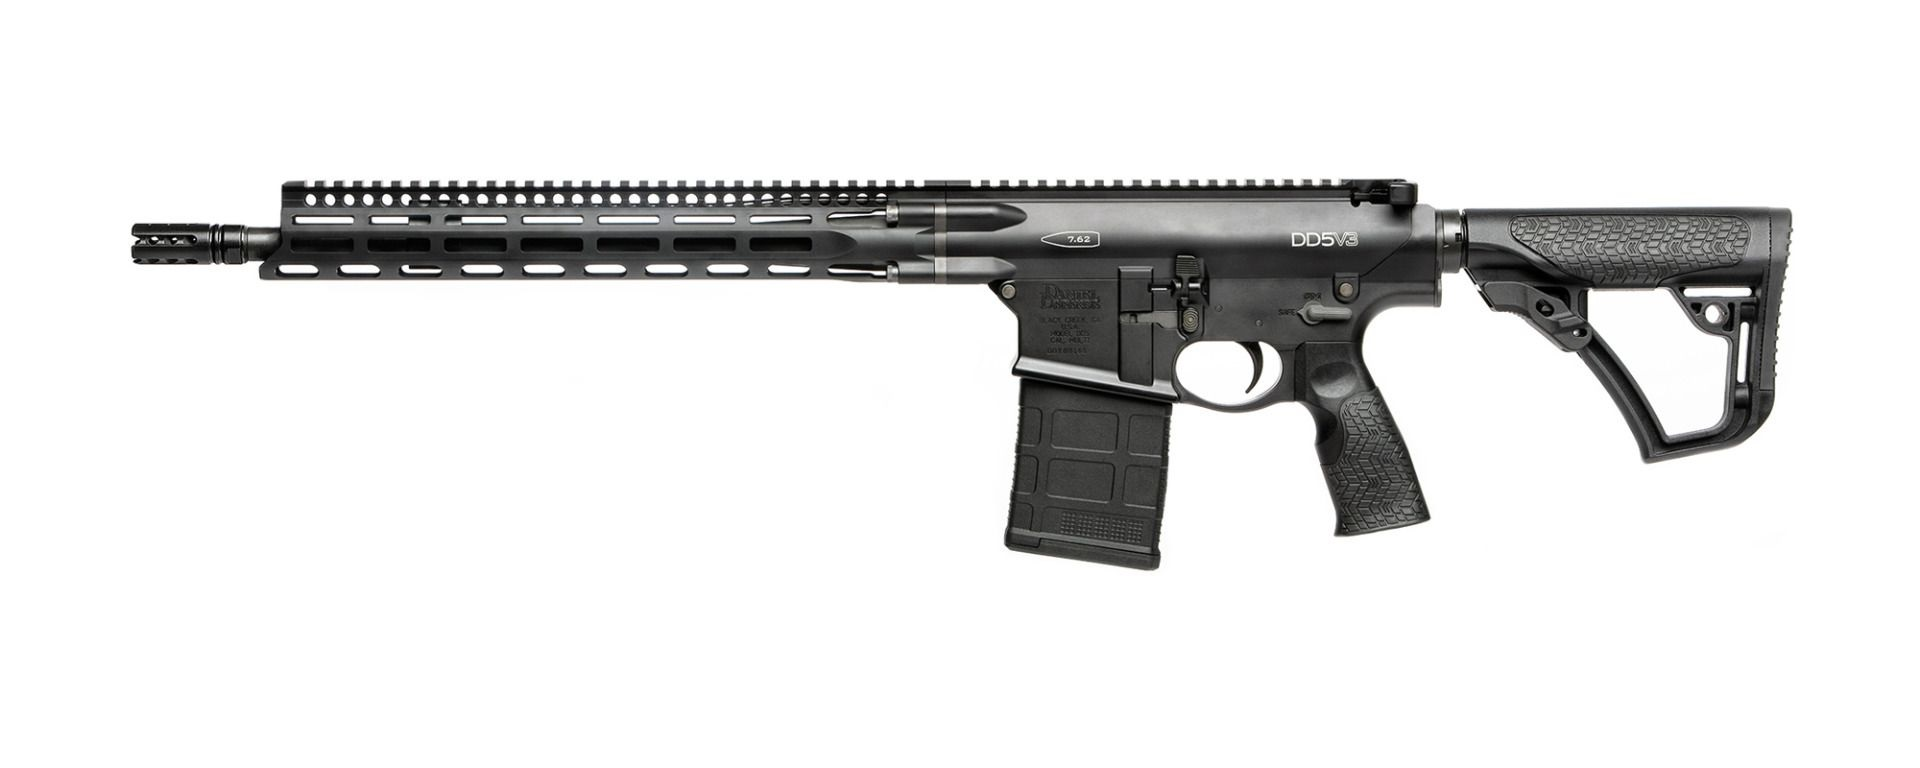 Daniel Defense DD5 V3 7.62 X 51MM | 308 WIN